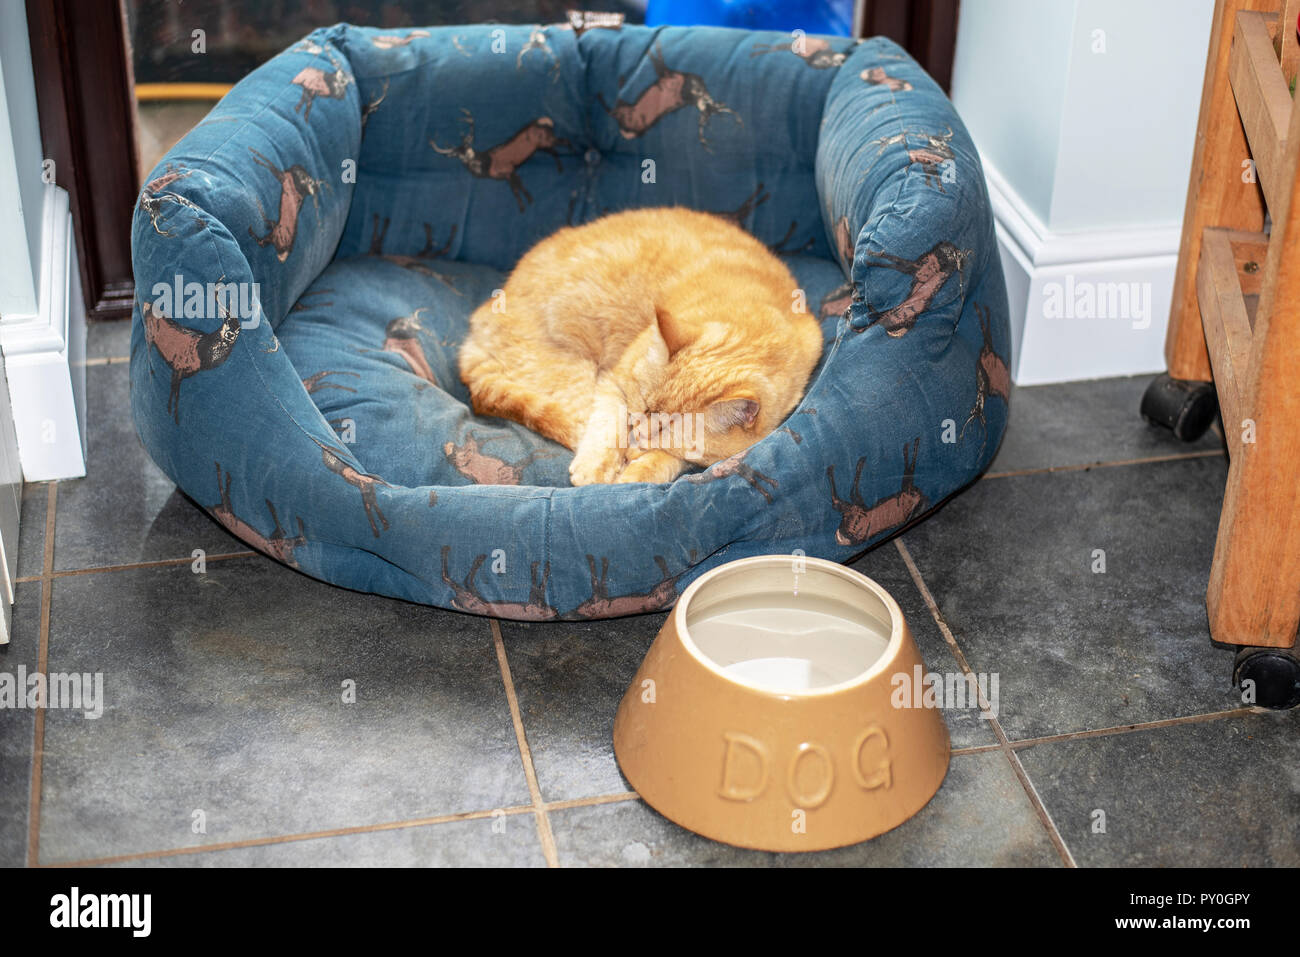 Ginger cat asleep in a dog's bed - Stock Image